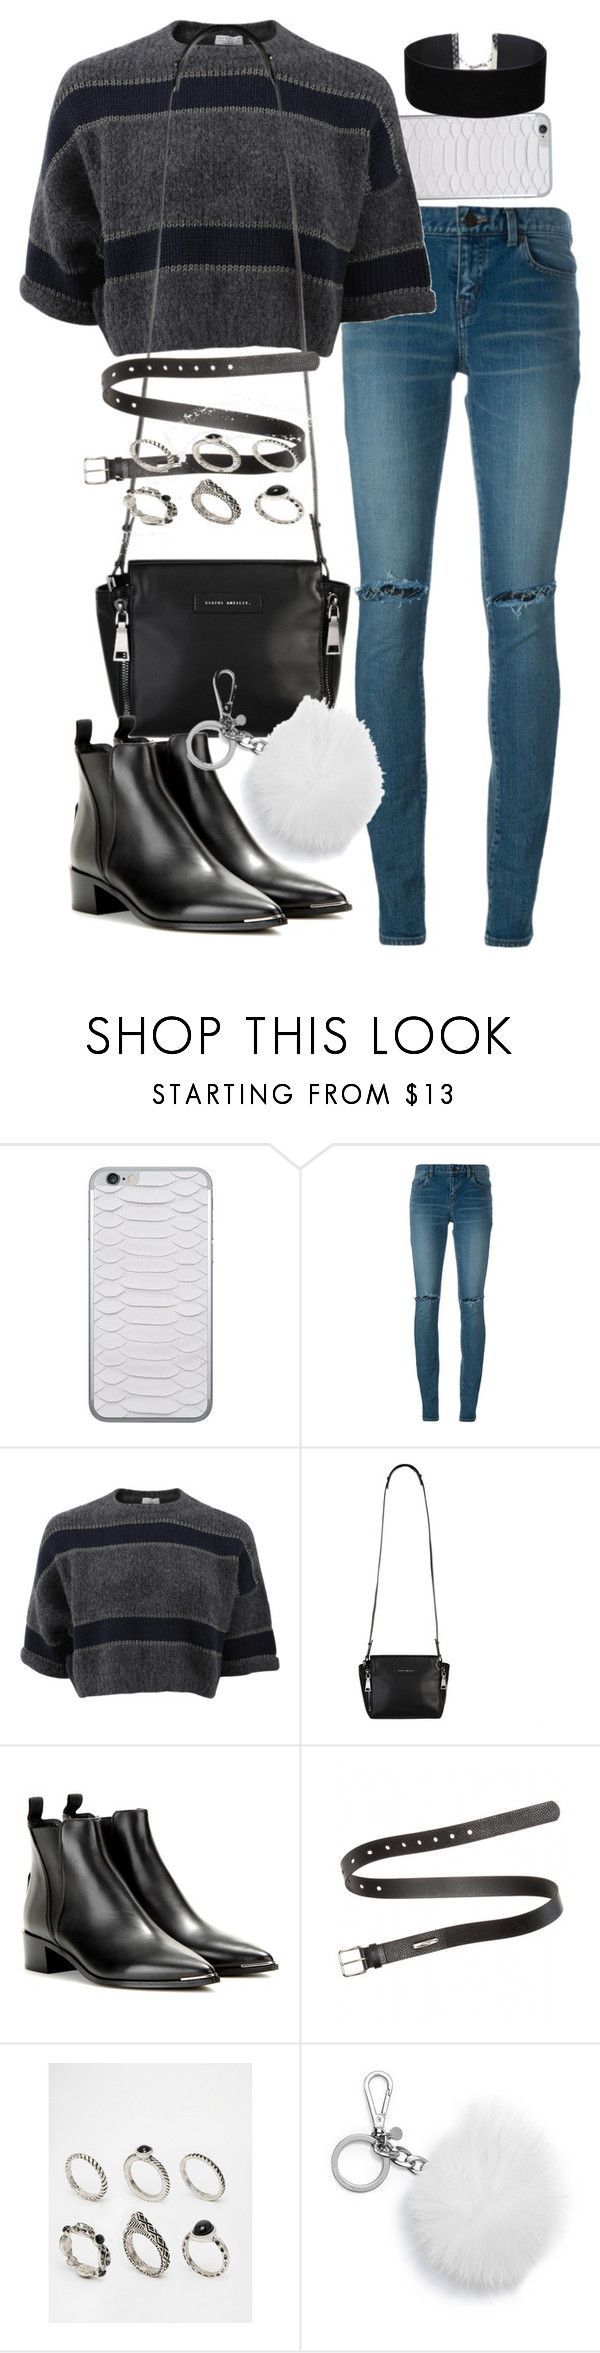 """Untitled #2170"" by mariie00h ❤ liked on Polyvore featuring Jamie Clawson, Yves Saint Laurent, Brunello Cucinelli, Acne Studios, ASOS, MICHAEL Michael Kors and Miss Selfridge"